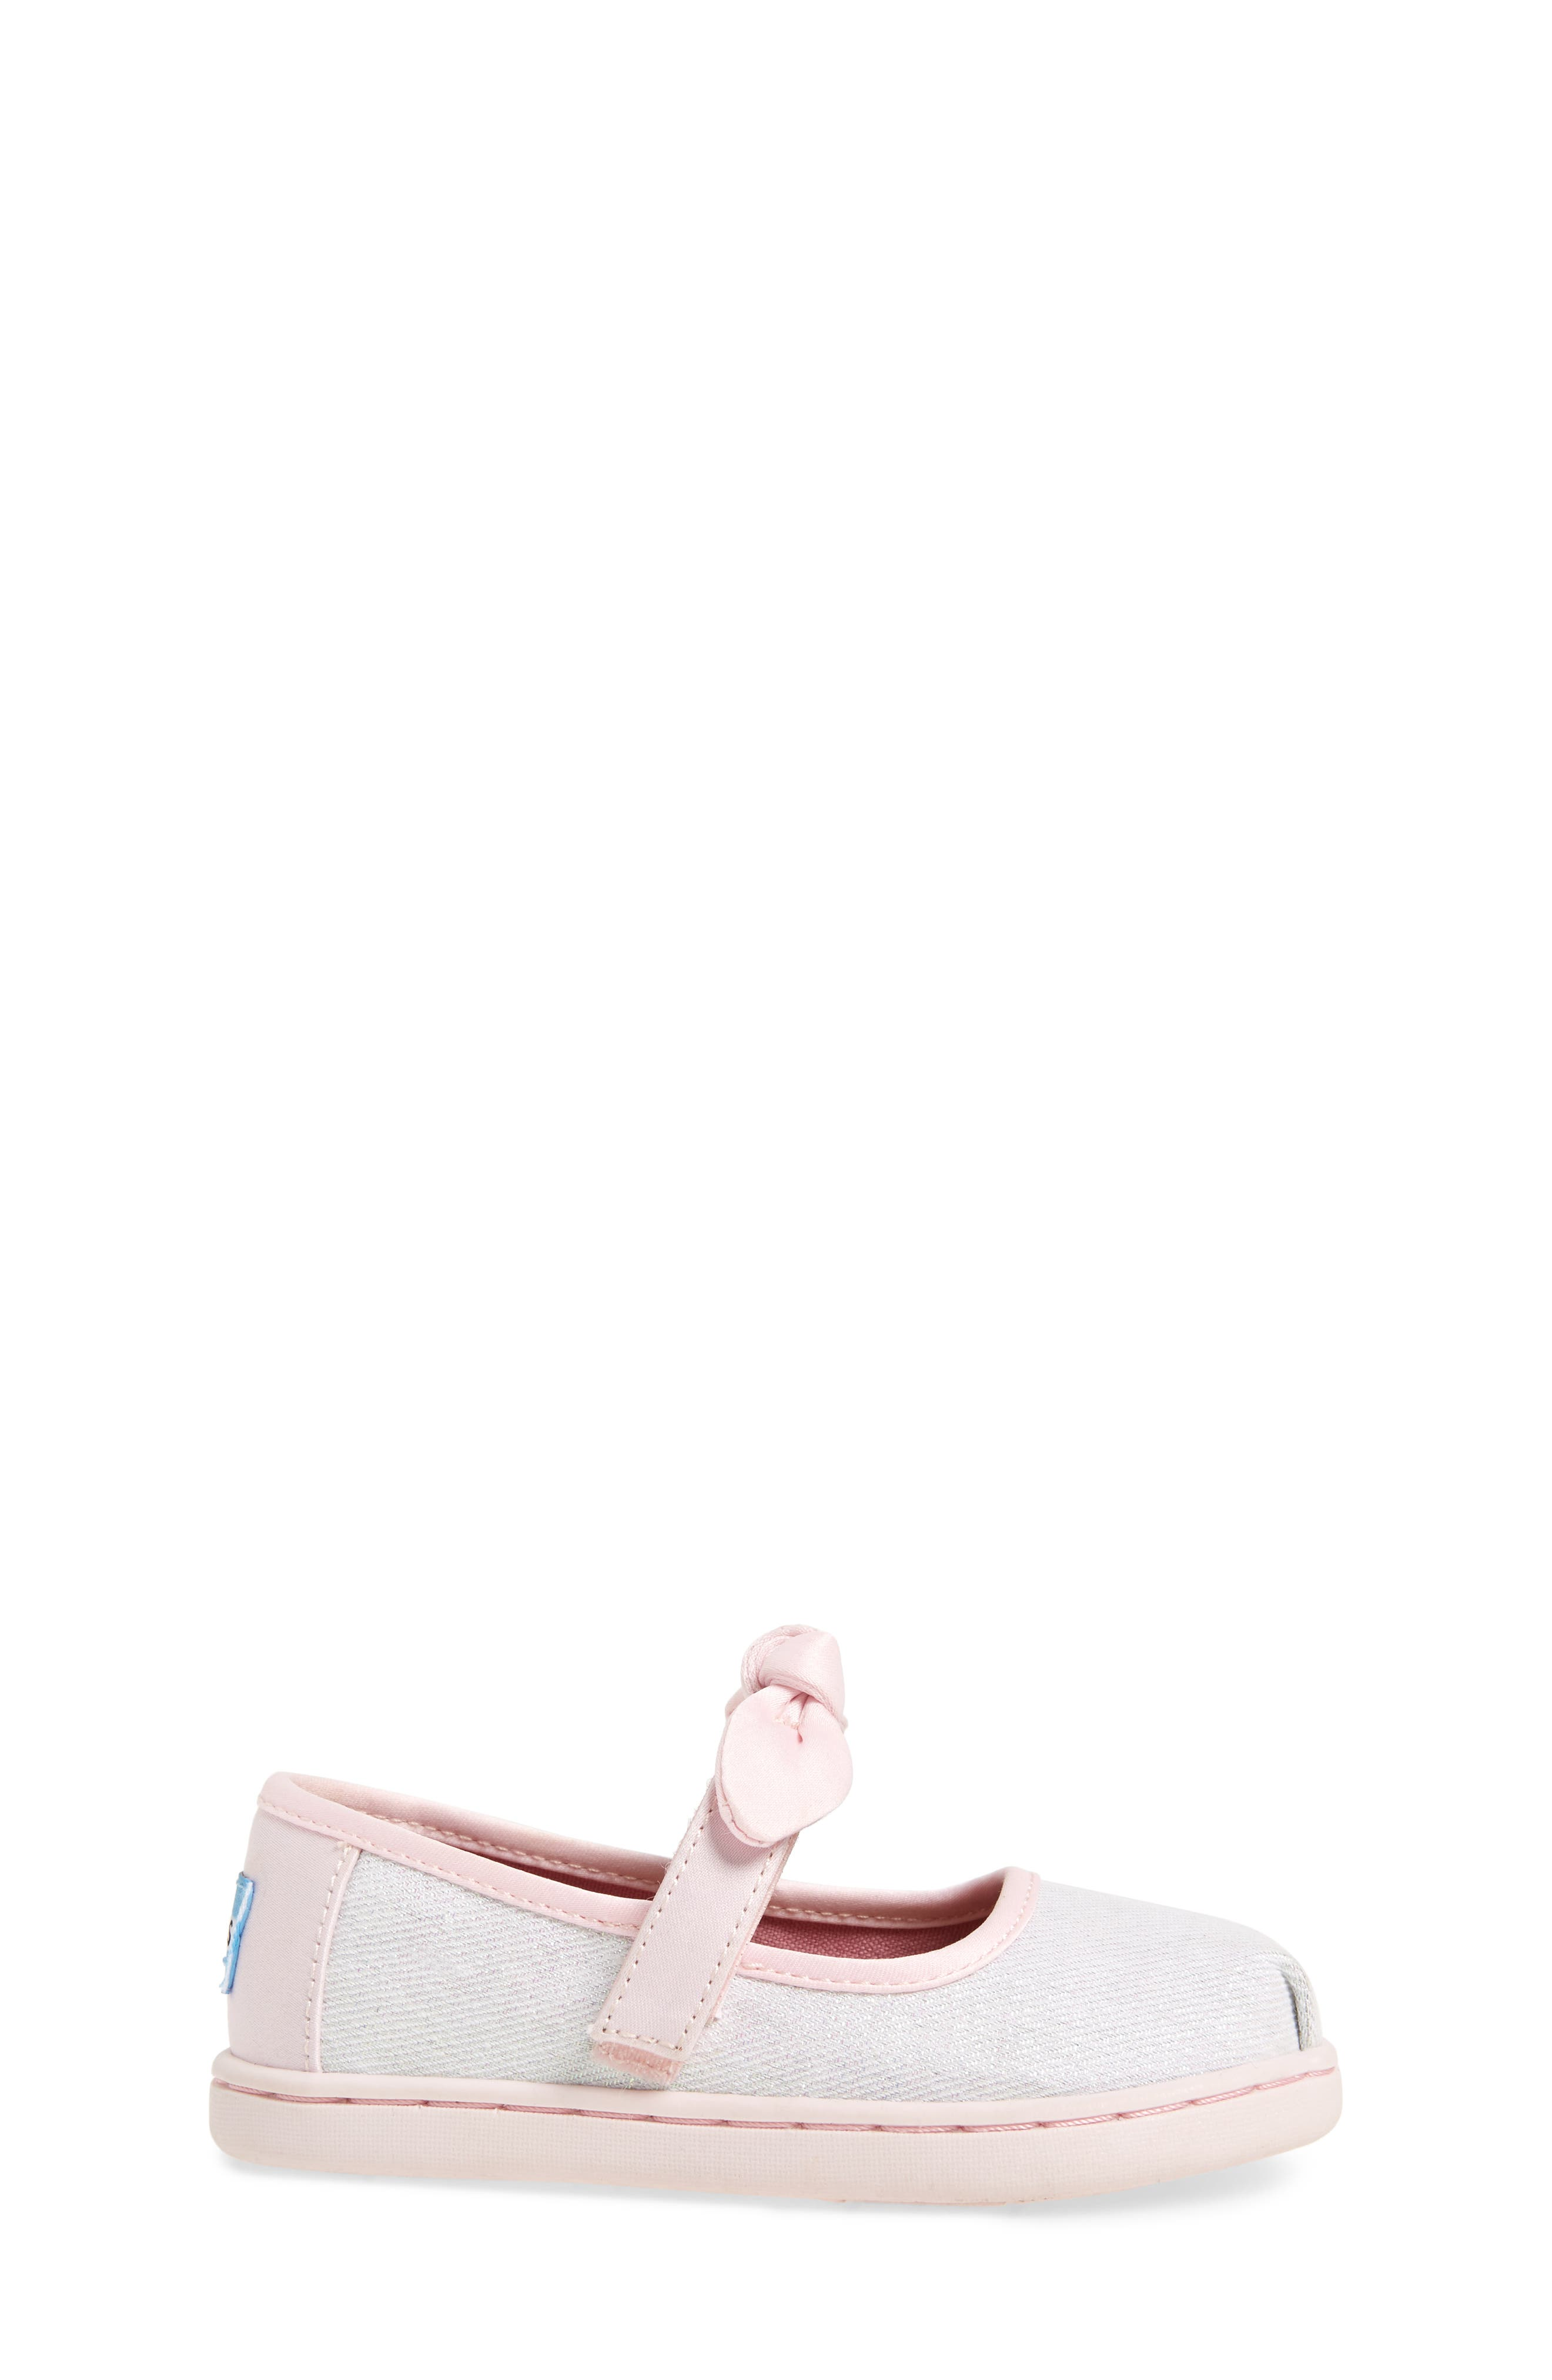 Bow Metallic Mary Jane Sneaker,                             Alternate thumbnail 3, color,                             IRIDESCENT TWILL GLIMMER